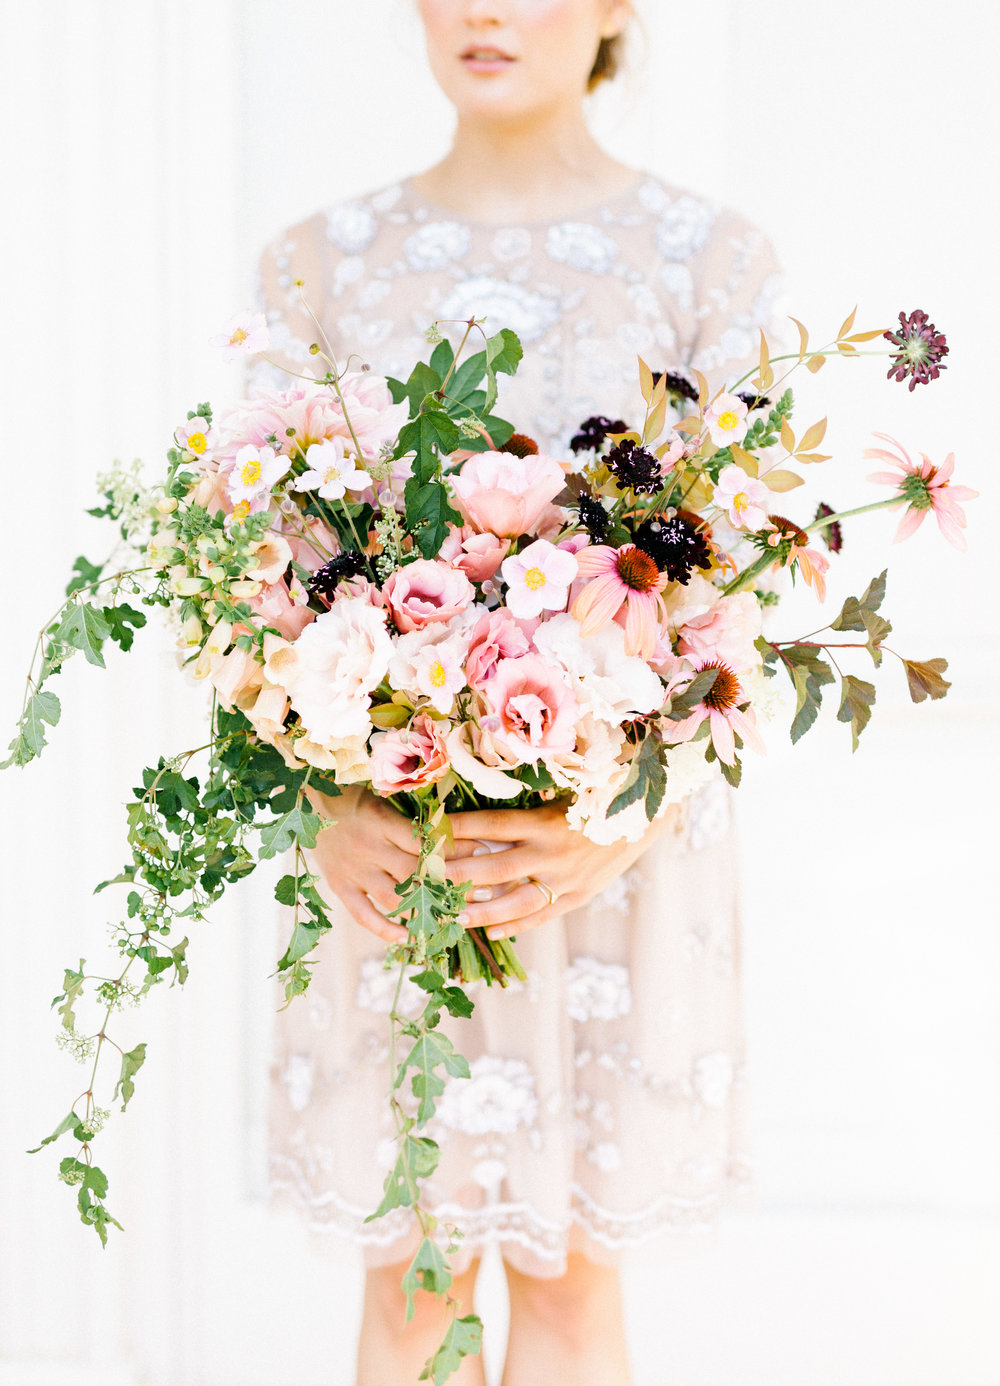 This whimsical bouquet was so wild and romantic with soft and bright tones, it fit in perfect with our whimsical elopement wedding inspiration shoot at the Woodlands Mansion in Philadelphia.